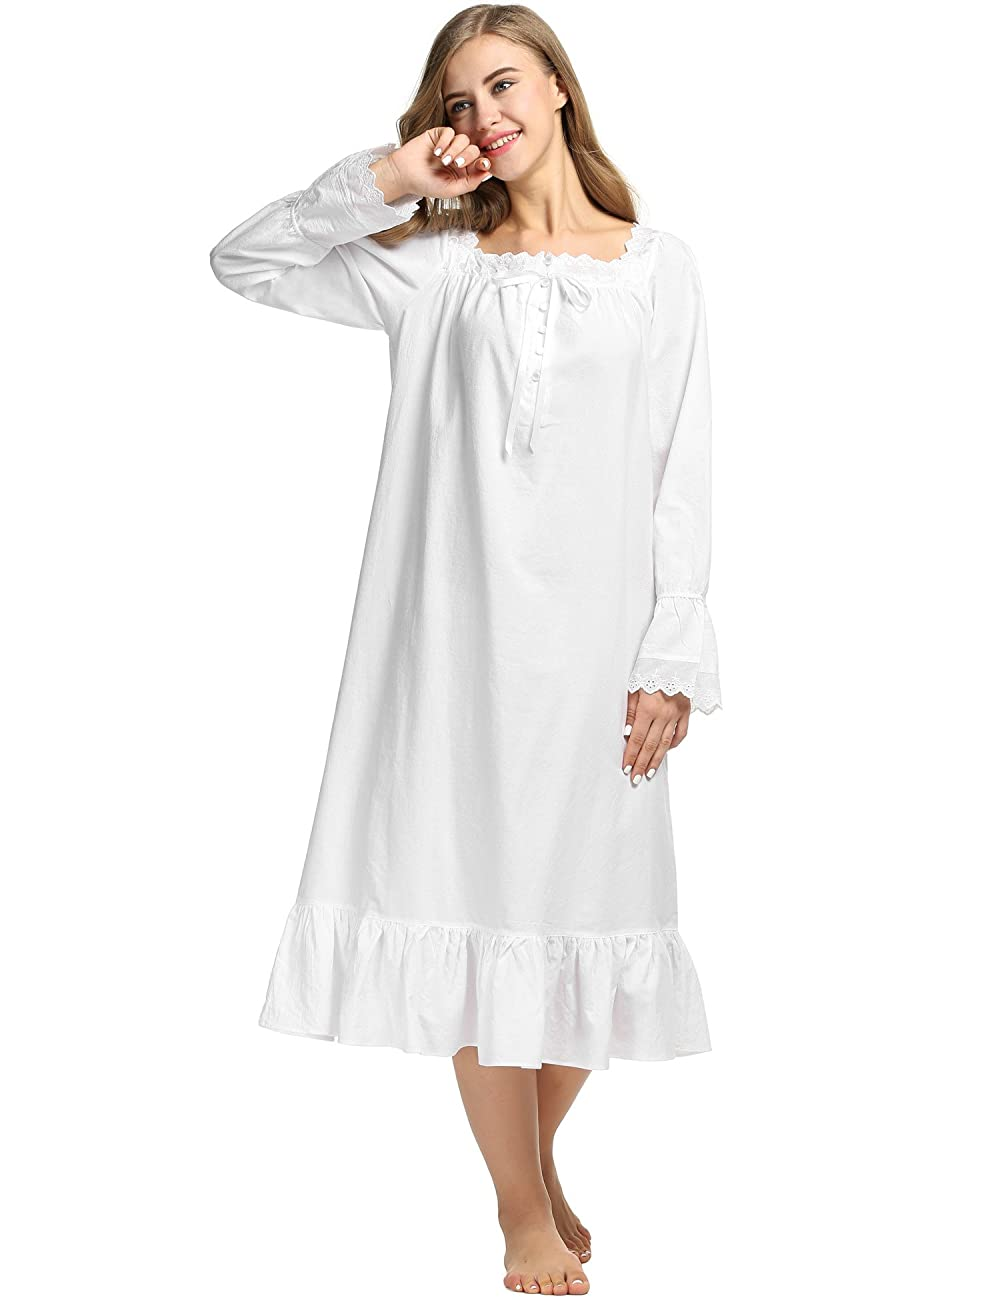 Avidlove Womens Cotton Victorian Nightgowns Romantic Long Bell Sleeve Nightshirt 2